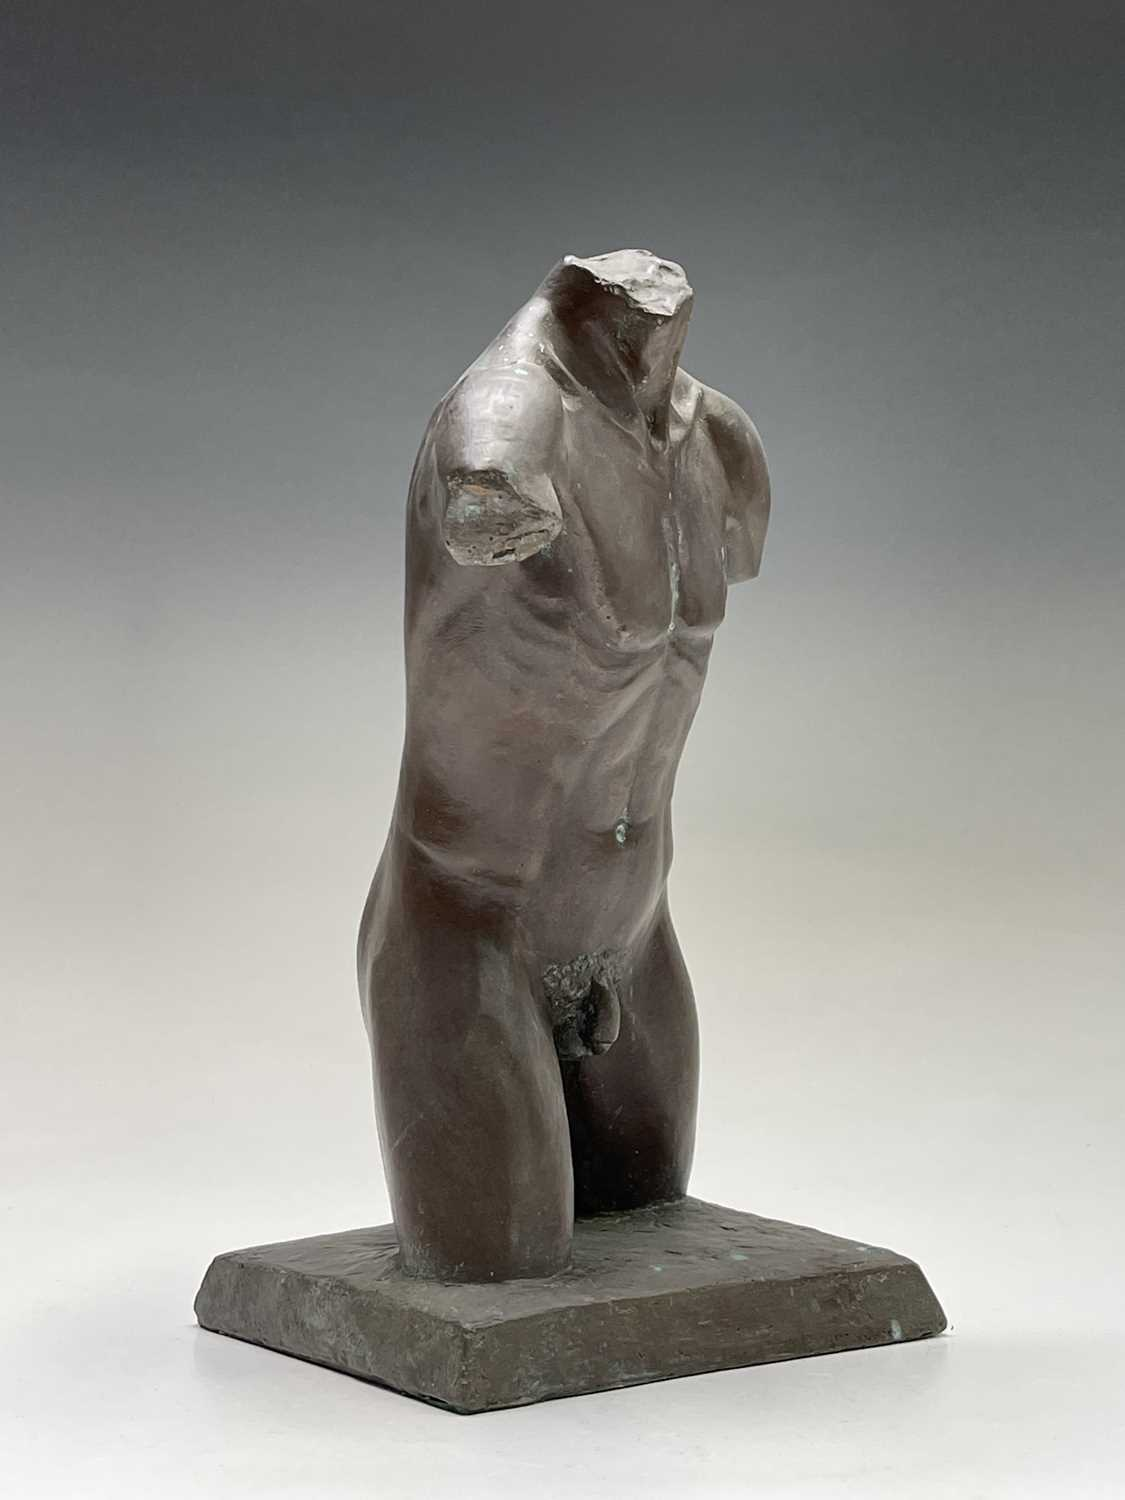 Alec WILES (1924)Males Torso Bronzed resin sculpture Signed and dated 1995Height 27cm - Image 3 of 10